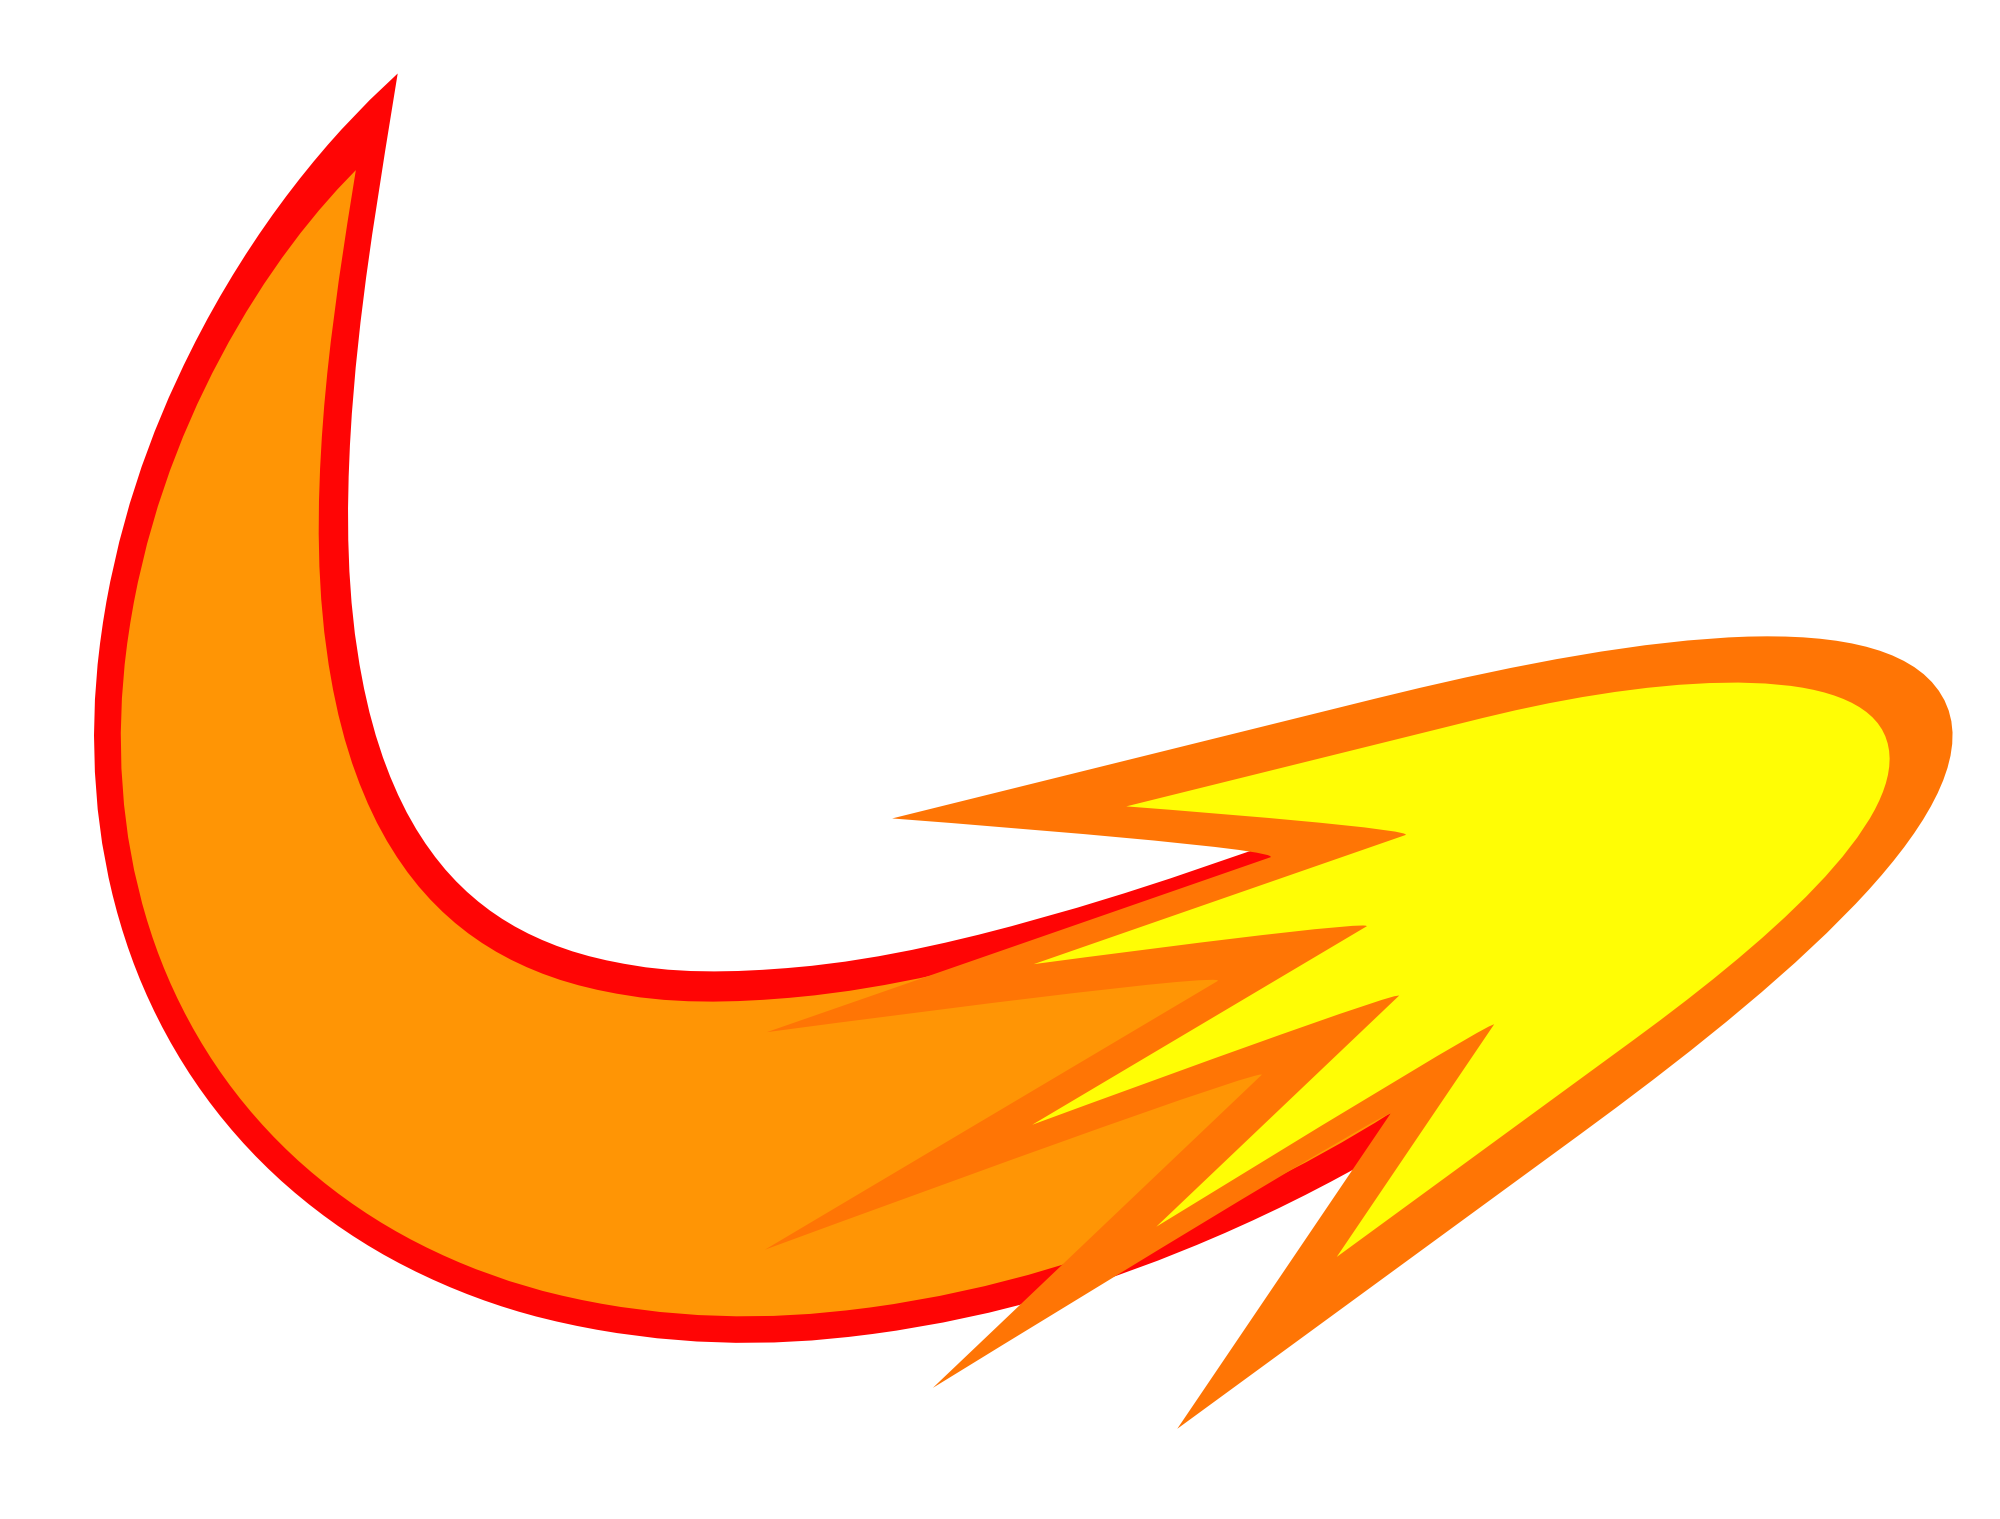 space sky huge. Fireball clipart comet tail